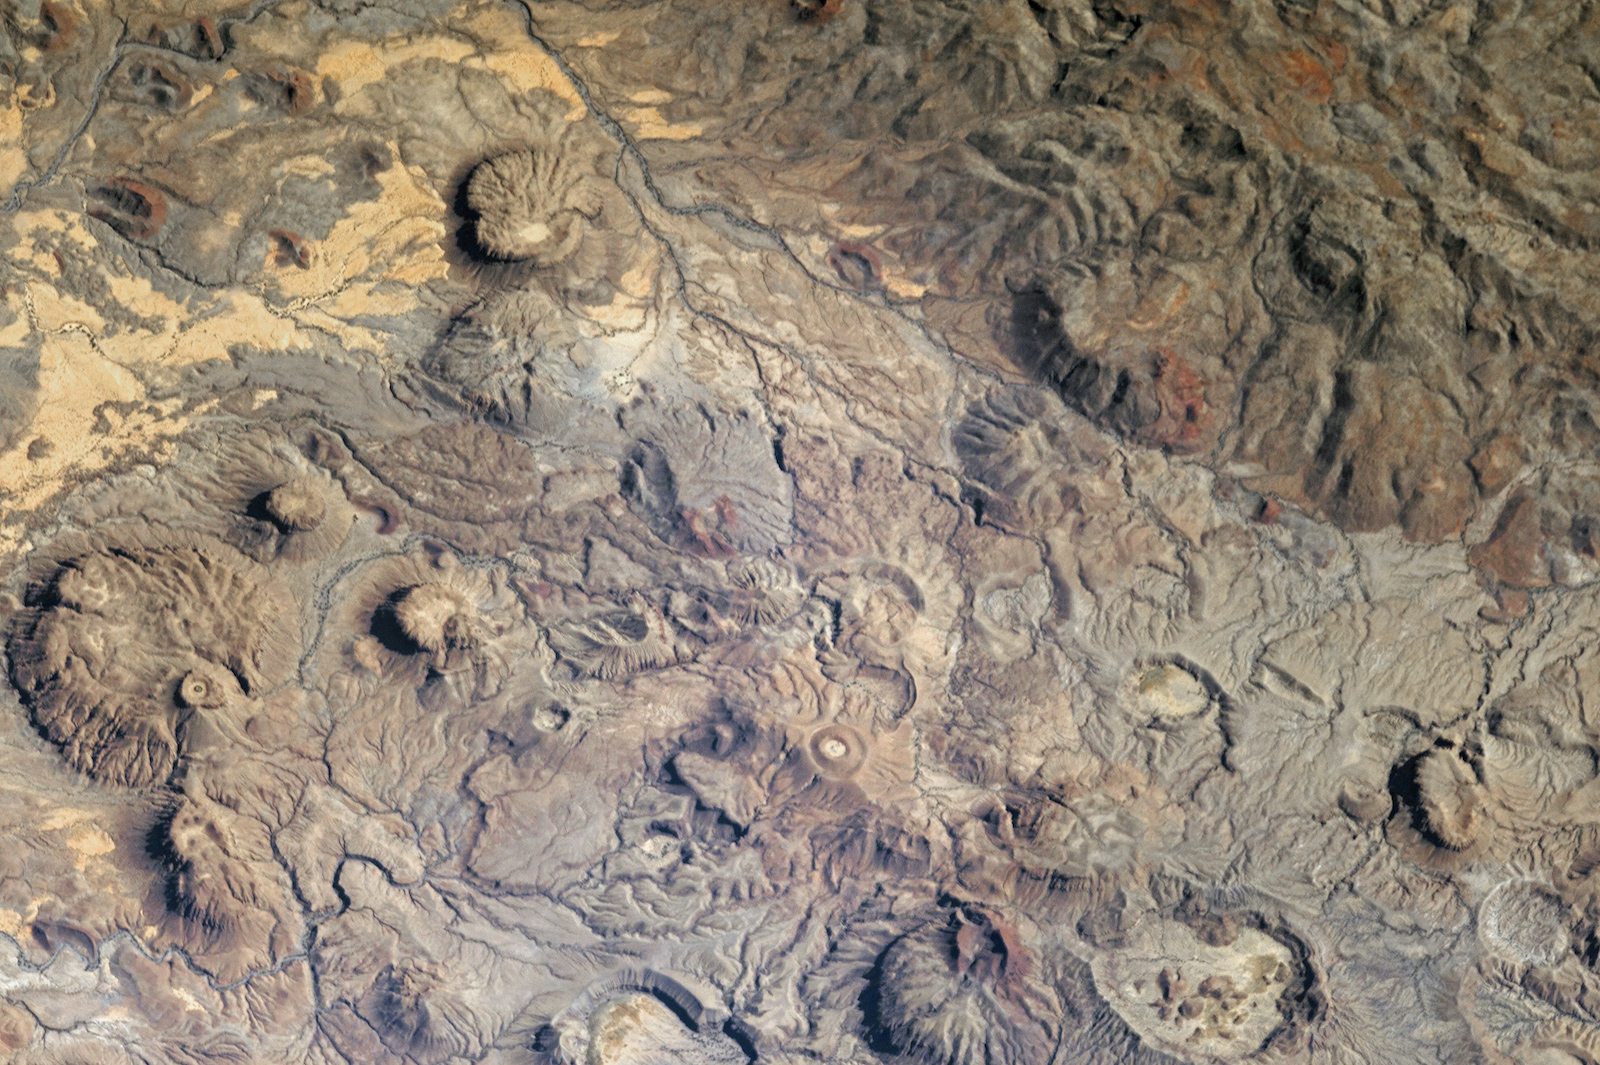 Today's Image of the Day comes thanks to the NASA Earth Observatory and features a look at the Meidob Volcanic Field in Sudan.